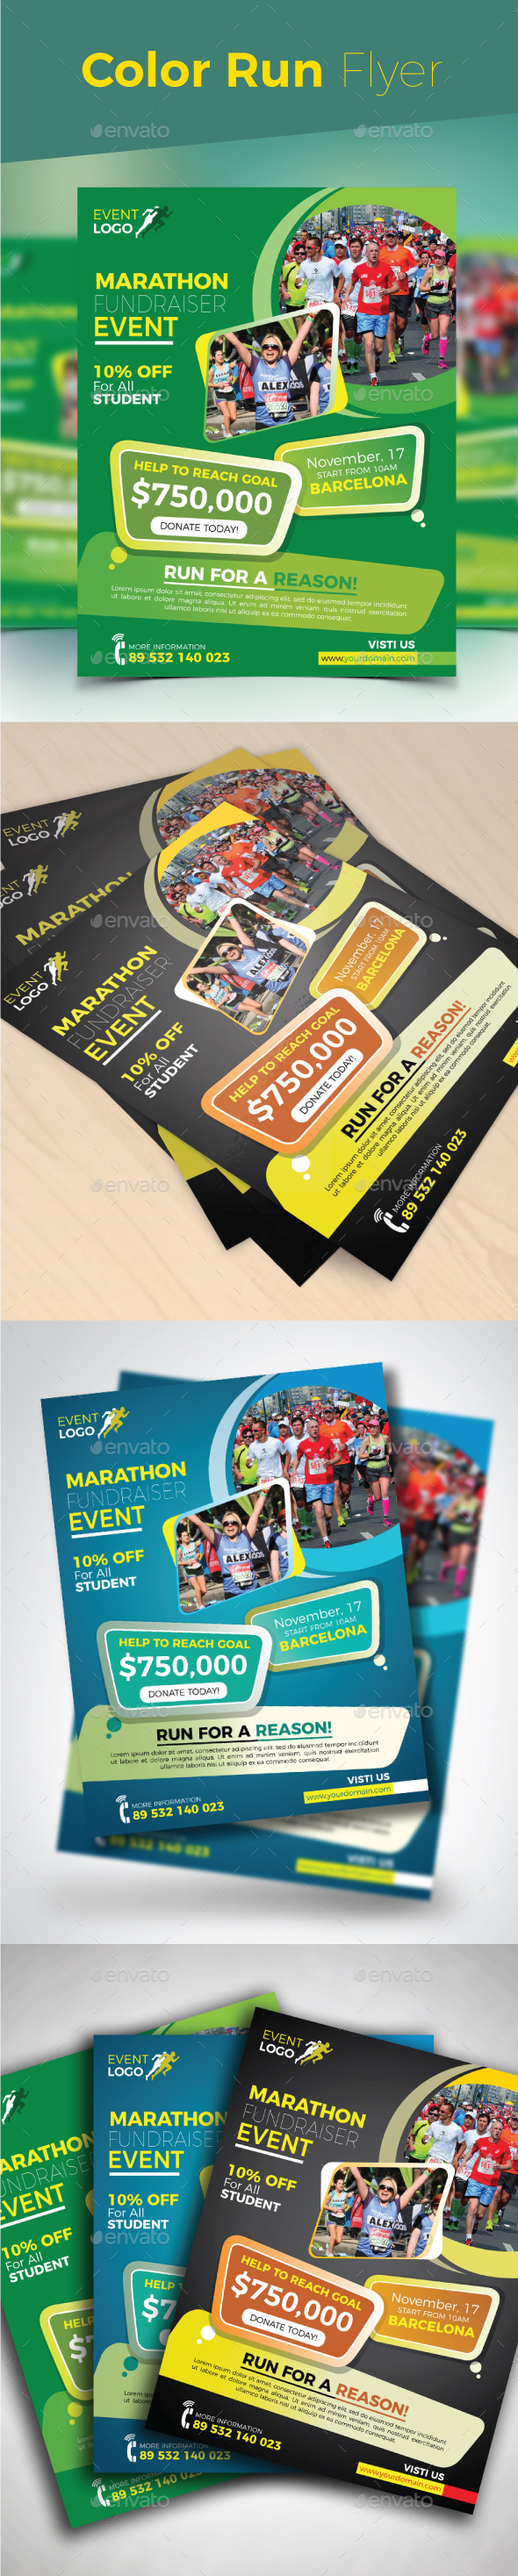 Color Run Flyer - Events Flyers